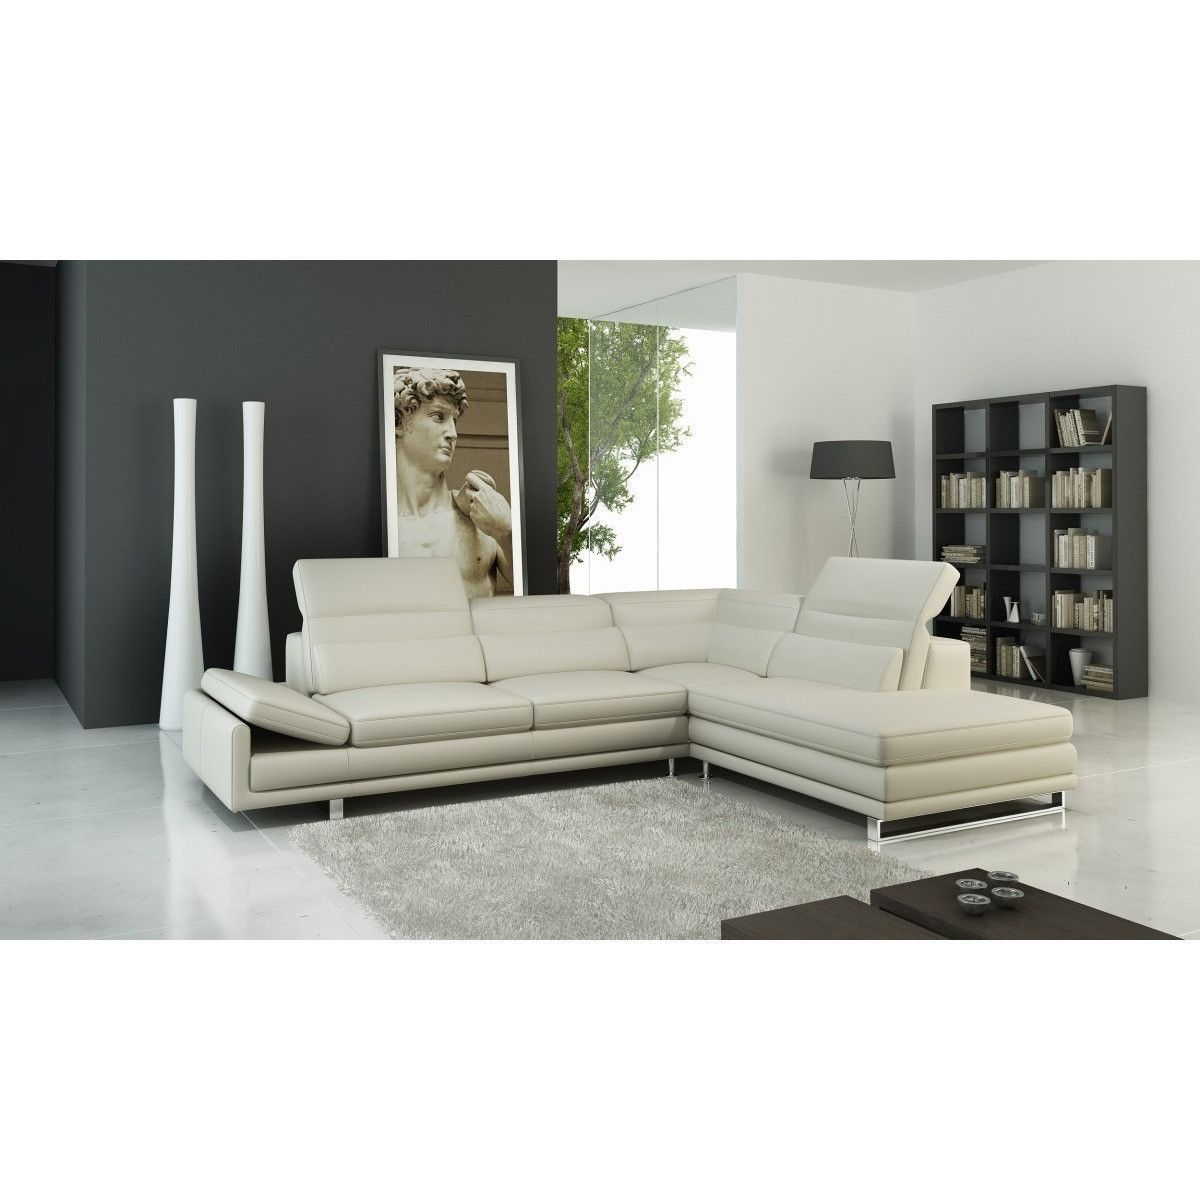 Divani Casa 958 Modern Italian Leather Sectional Sofa Products